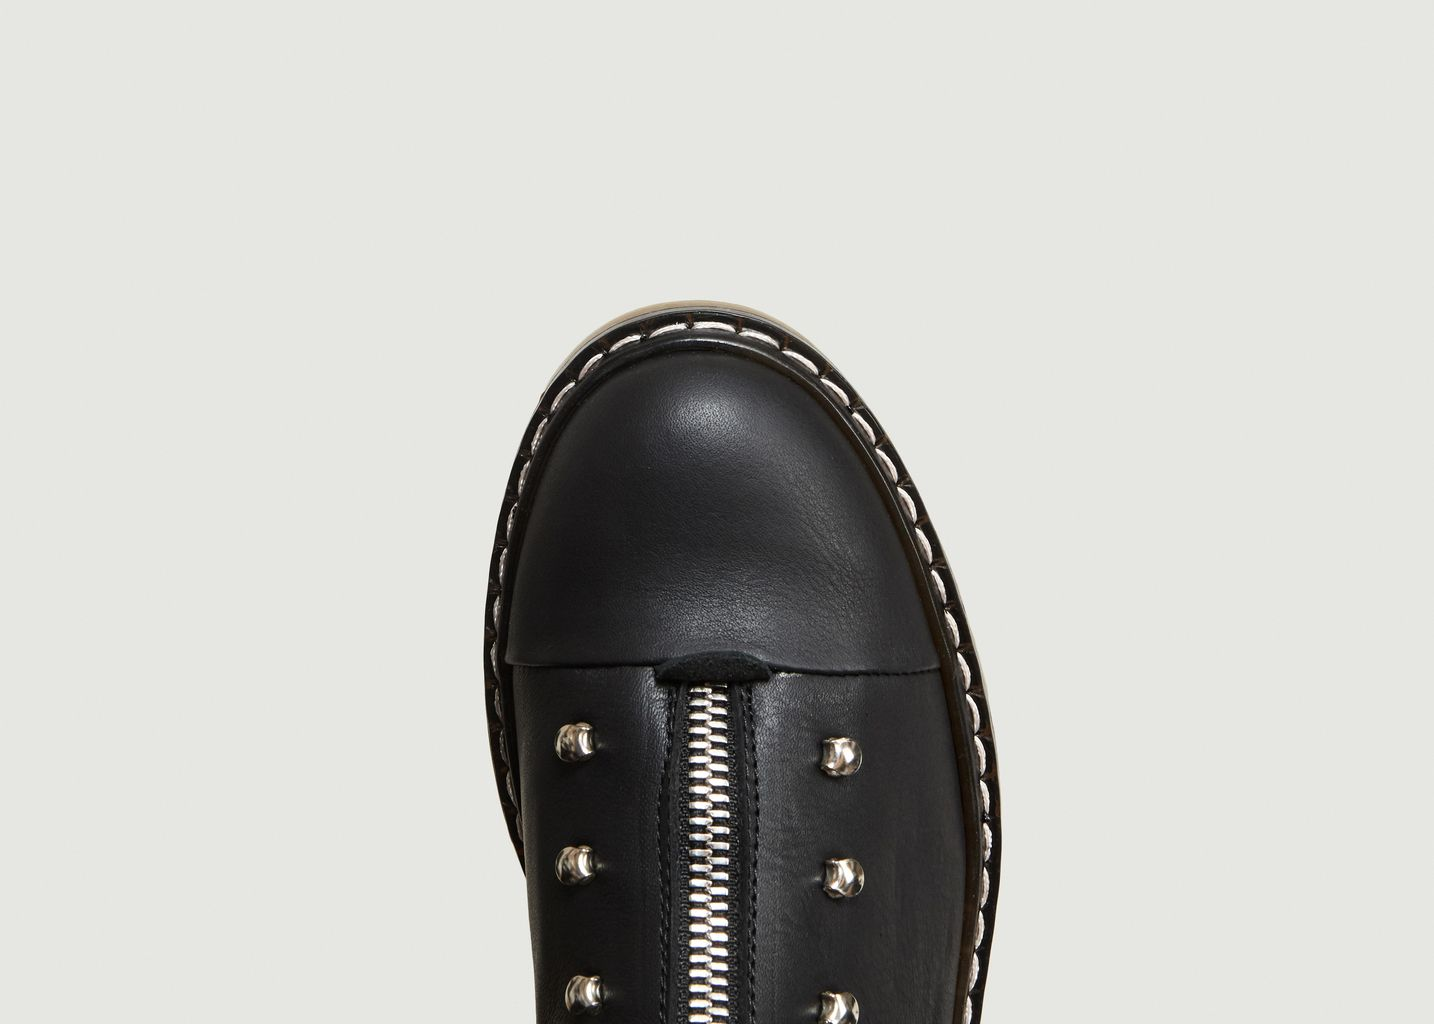 Soldes Bottines En Cuir Danalo Noir An Hour And A Shower à -50%   L ... 84605970bf8